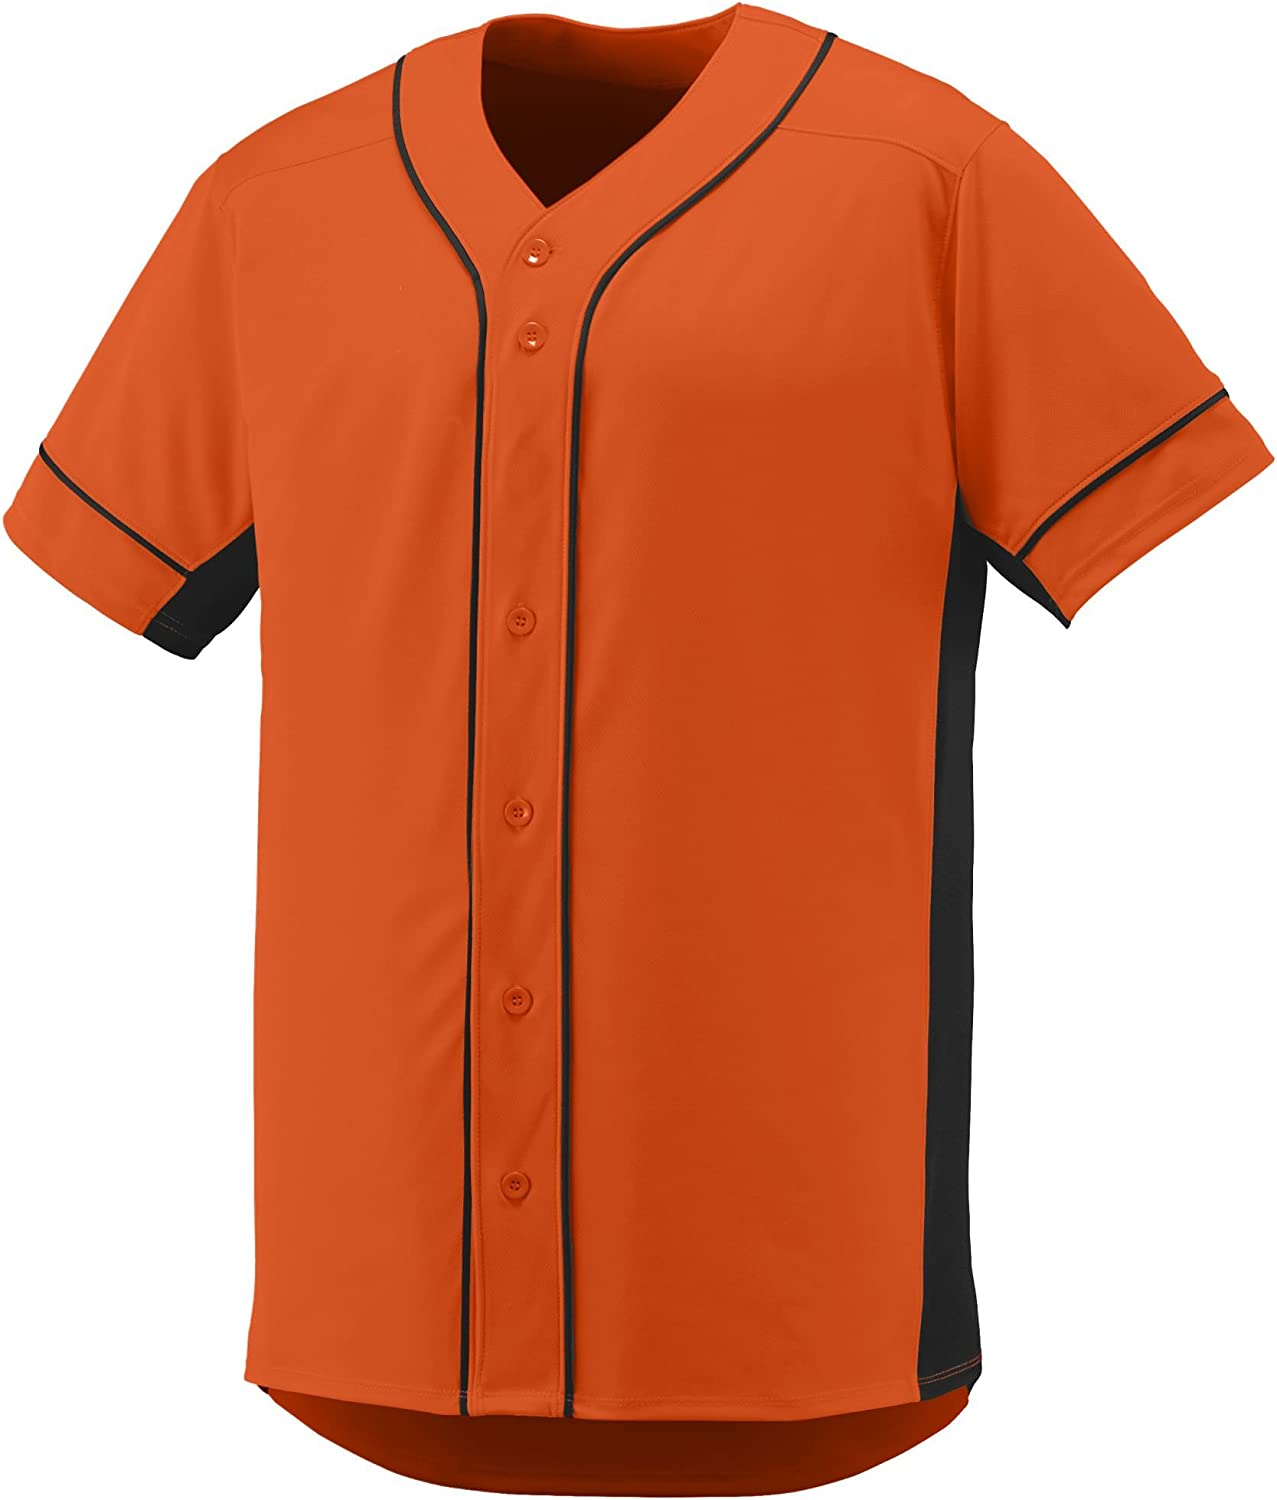 Augusta Sportswear Boys' Slugger Baseball Jersey S Orange/Black